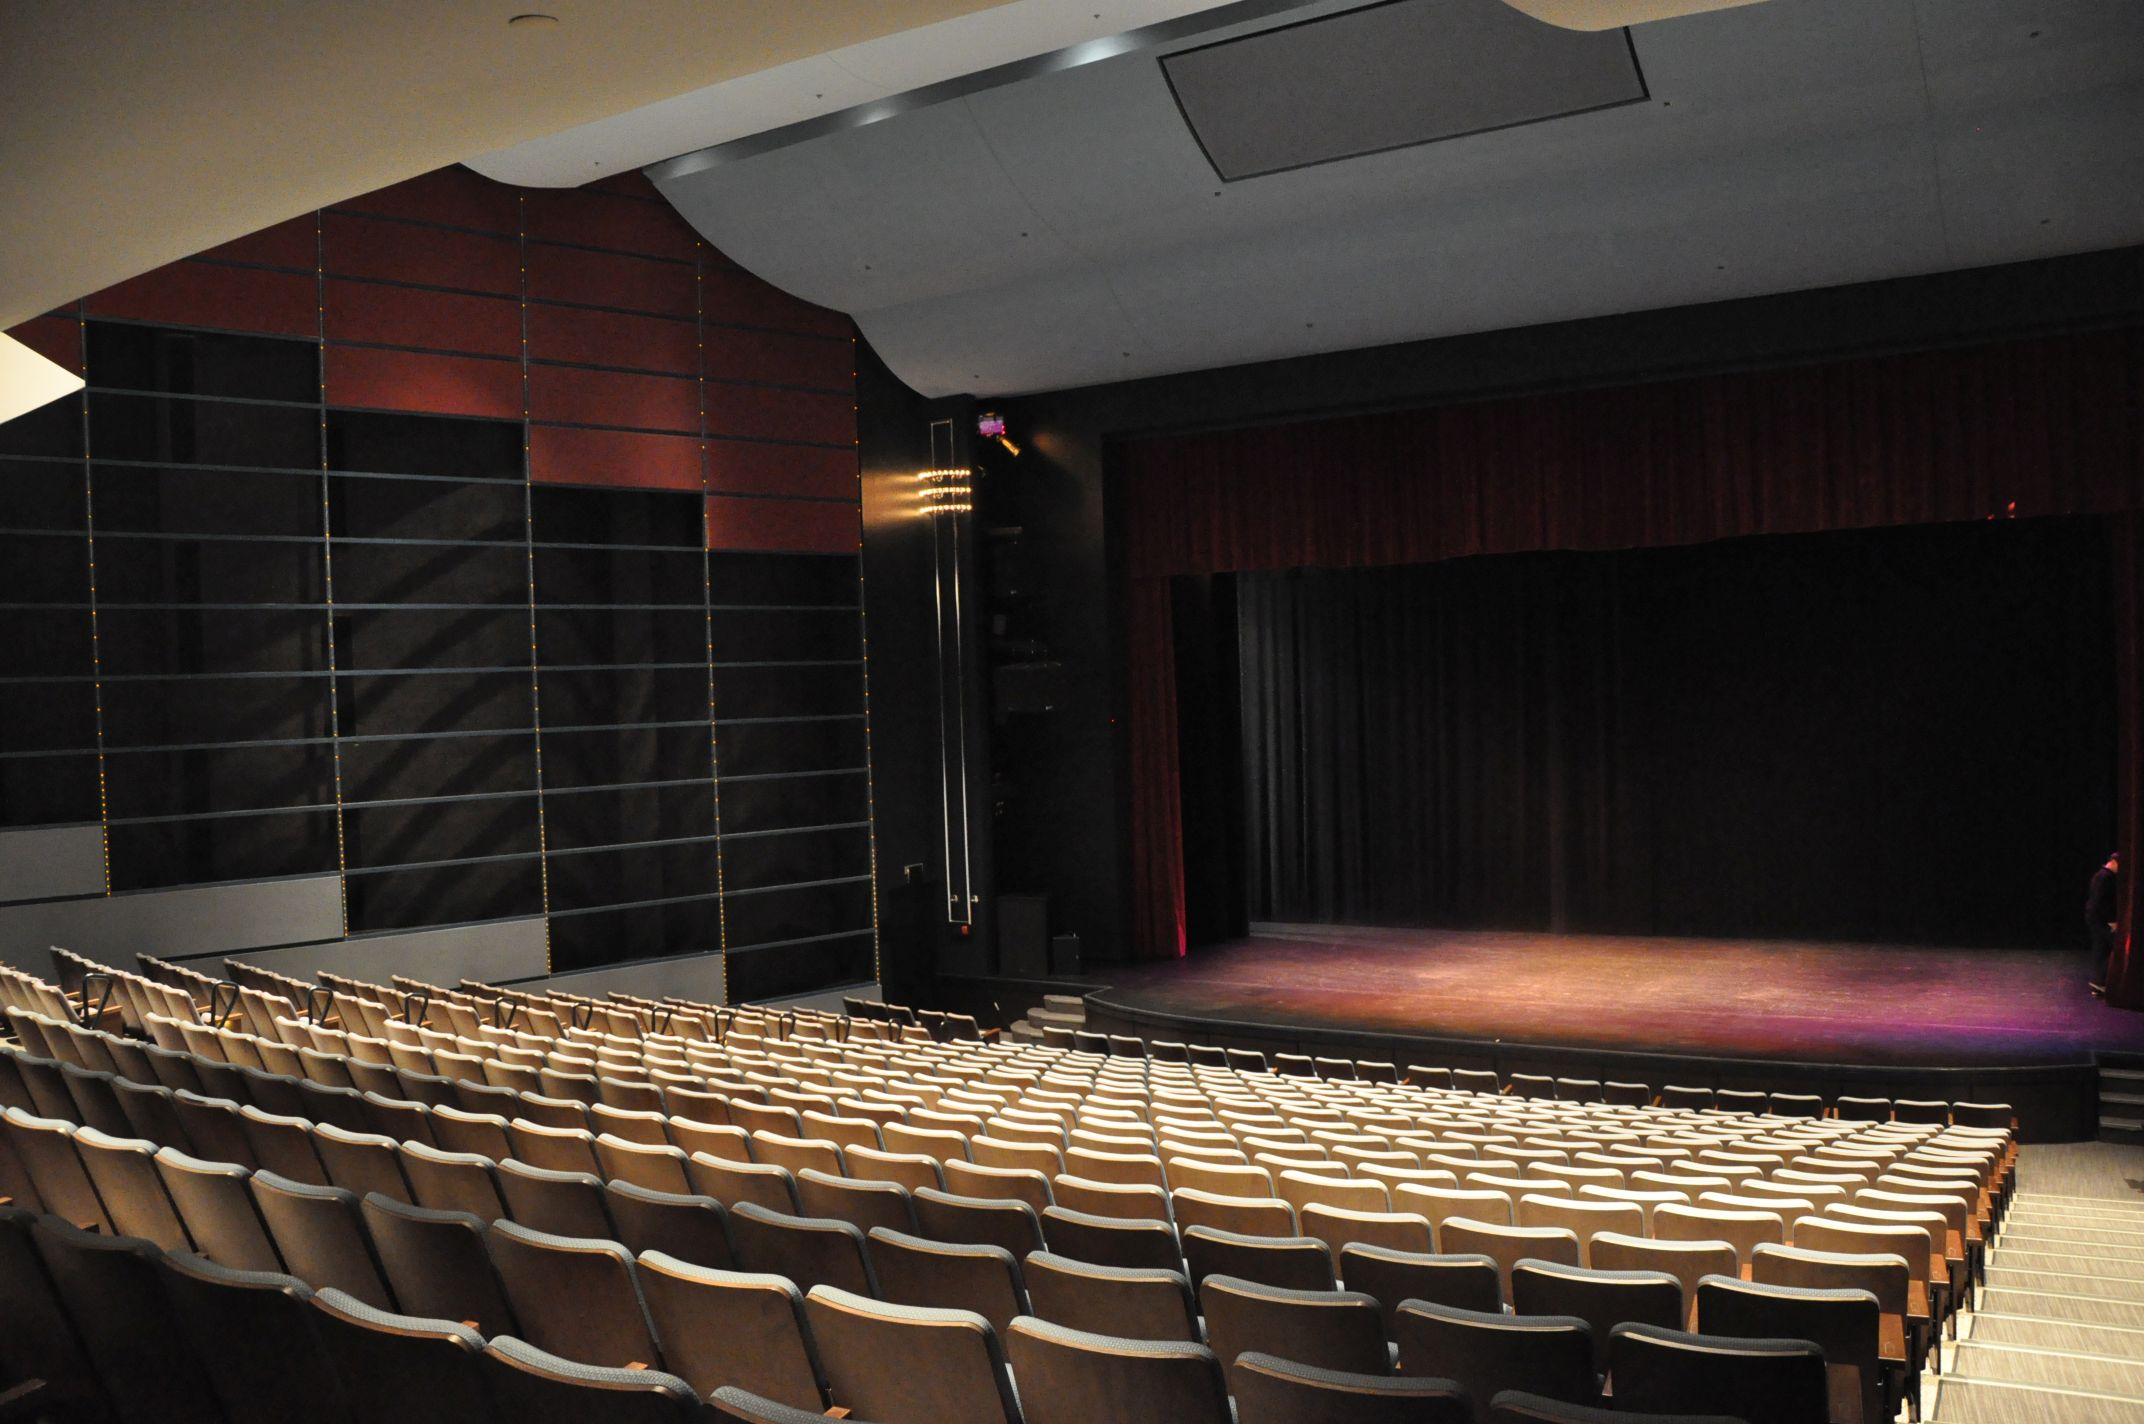 Interior view of the Centrepointe Theatre mainstage and seating area.